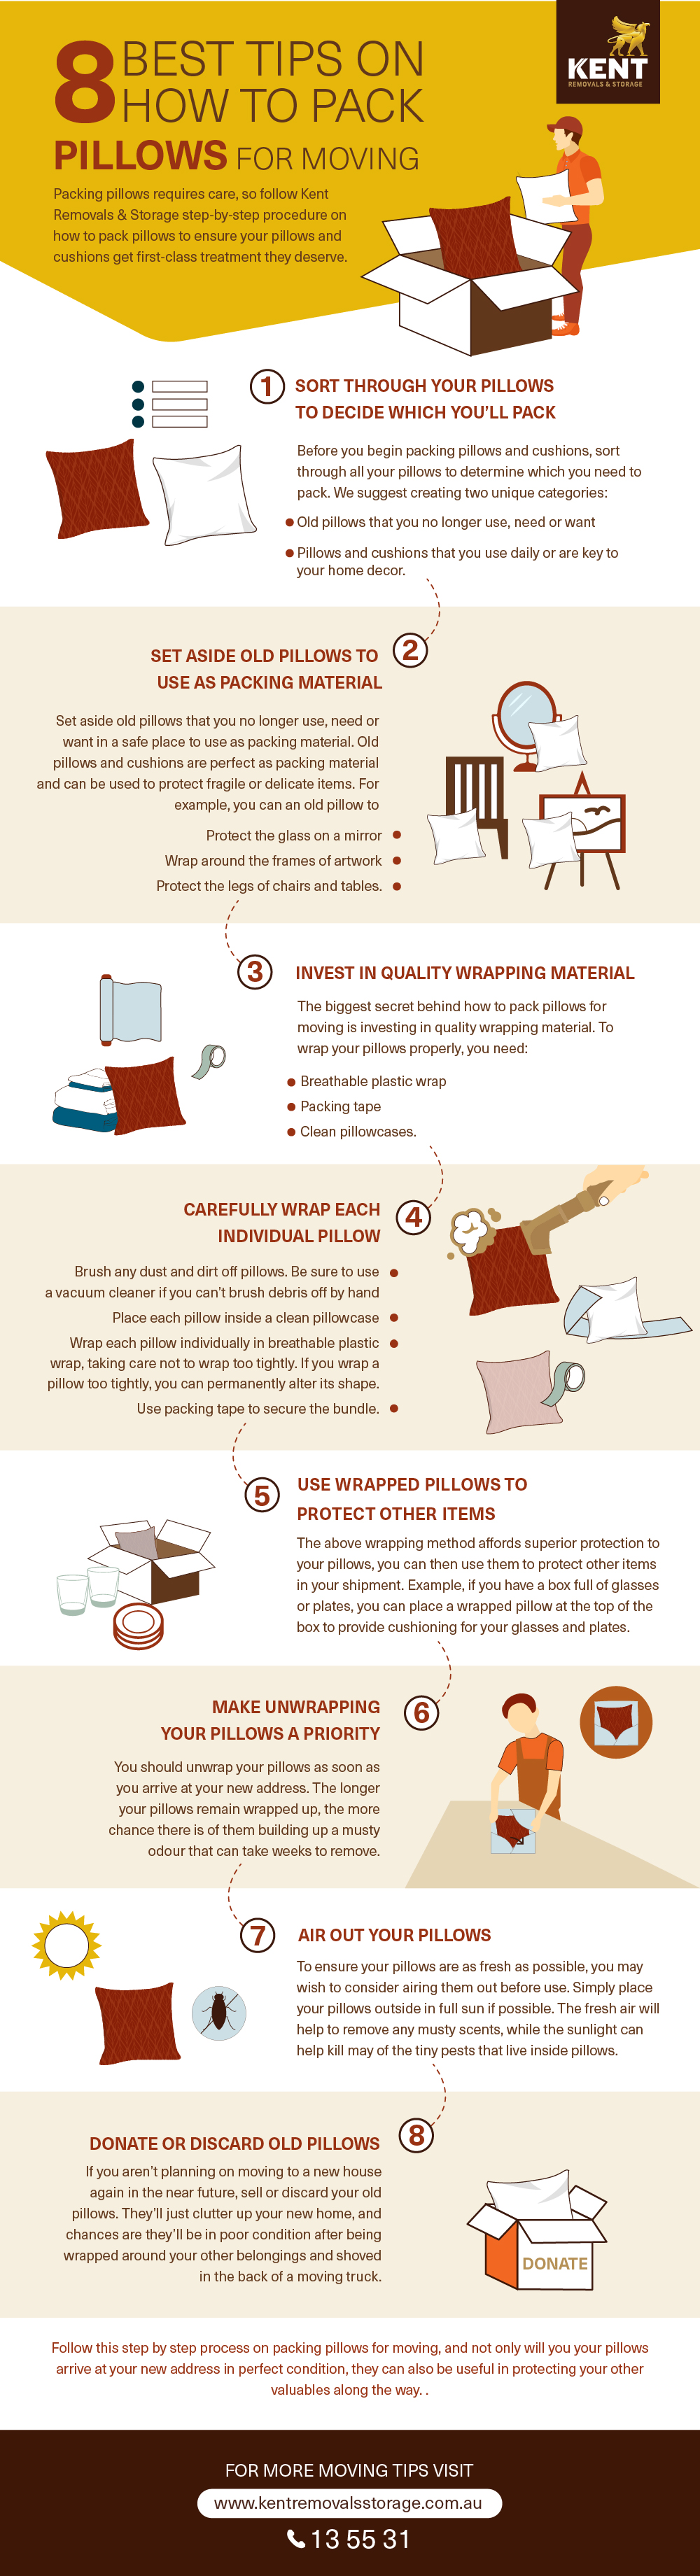 8 Best Tips On How To Pack Pillows For Moving